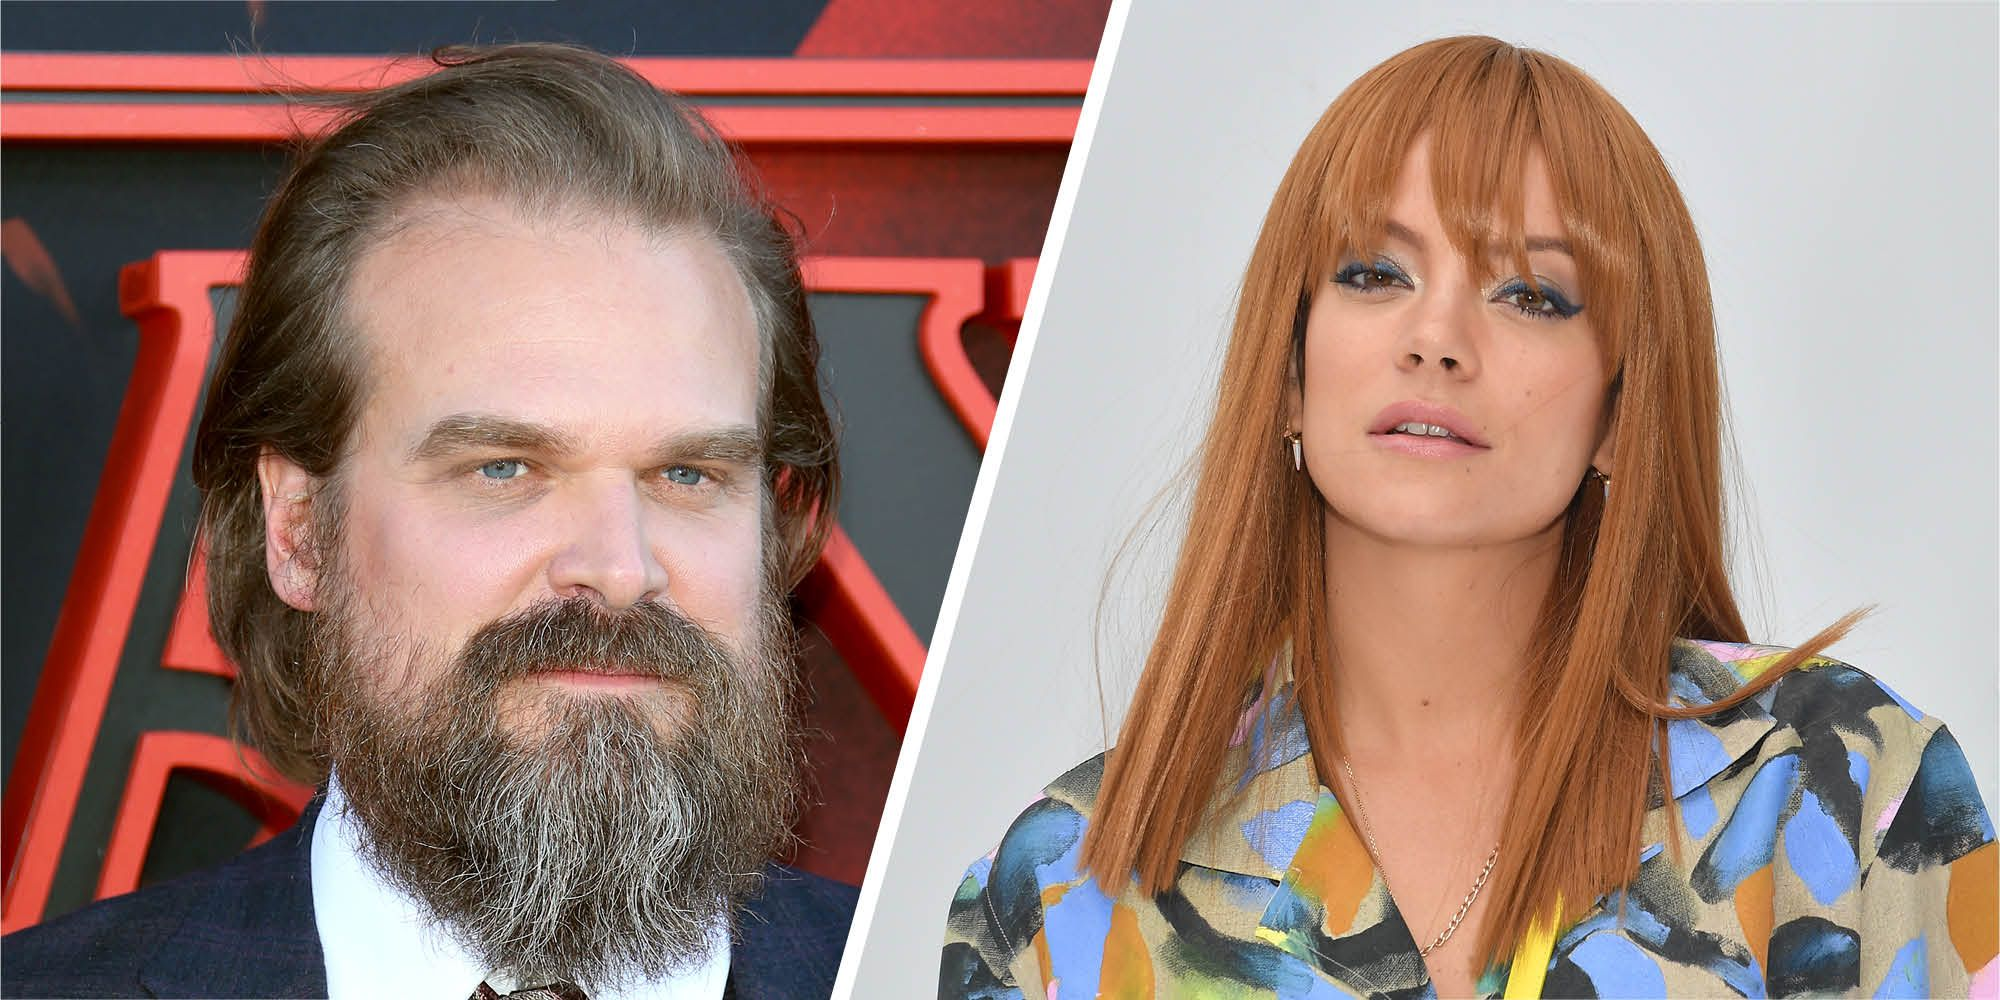 Lily Allen and Stranger Things' David Harbour have been hanging out together